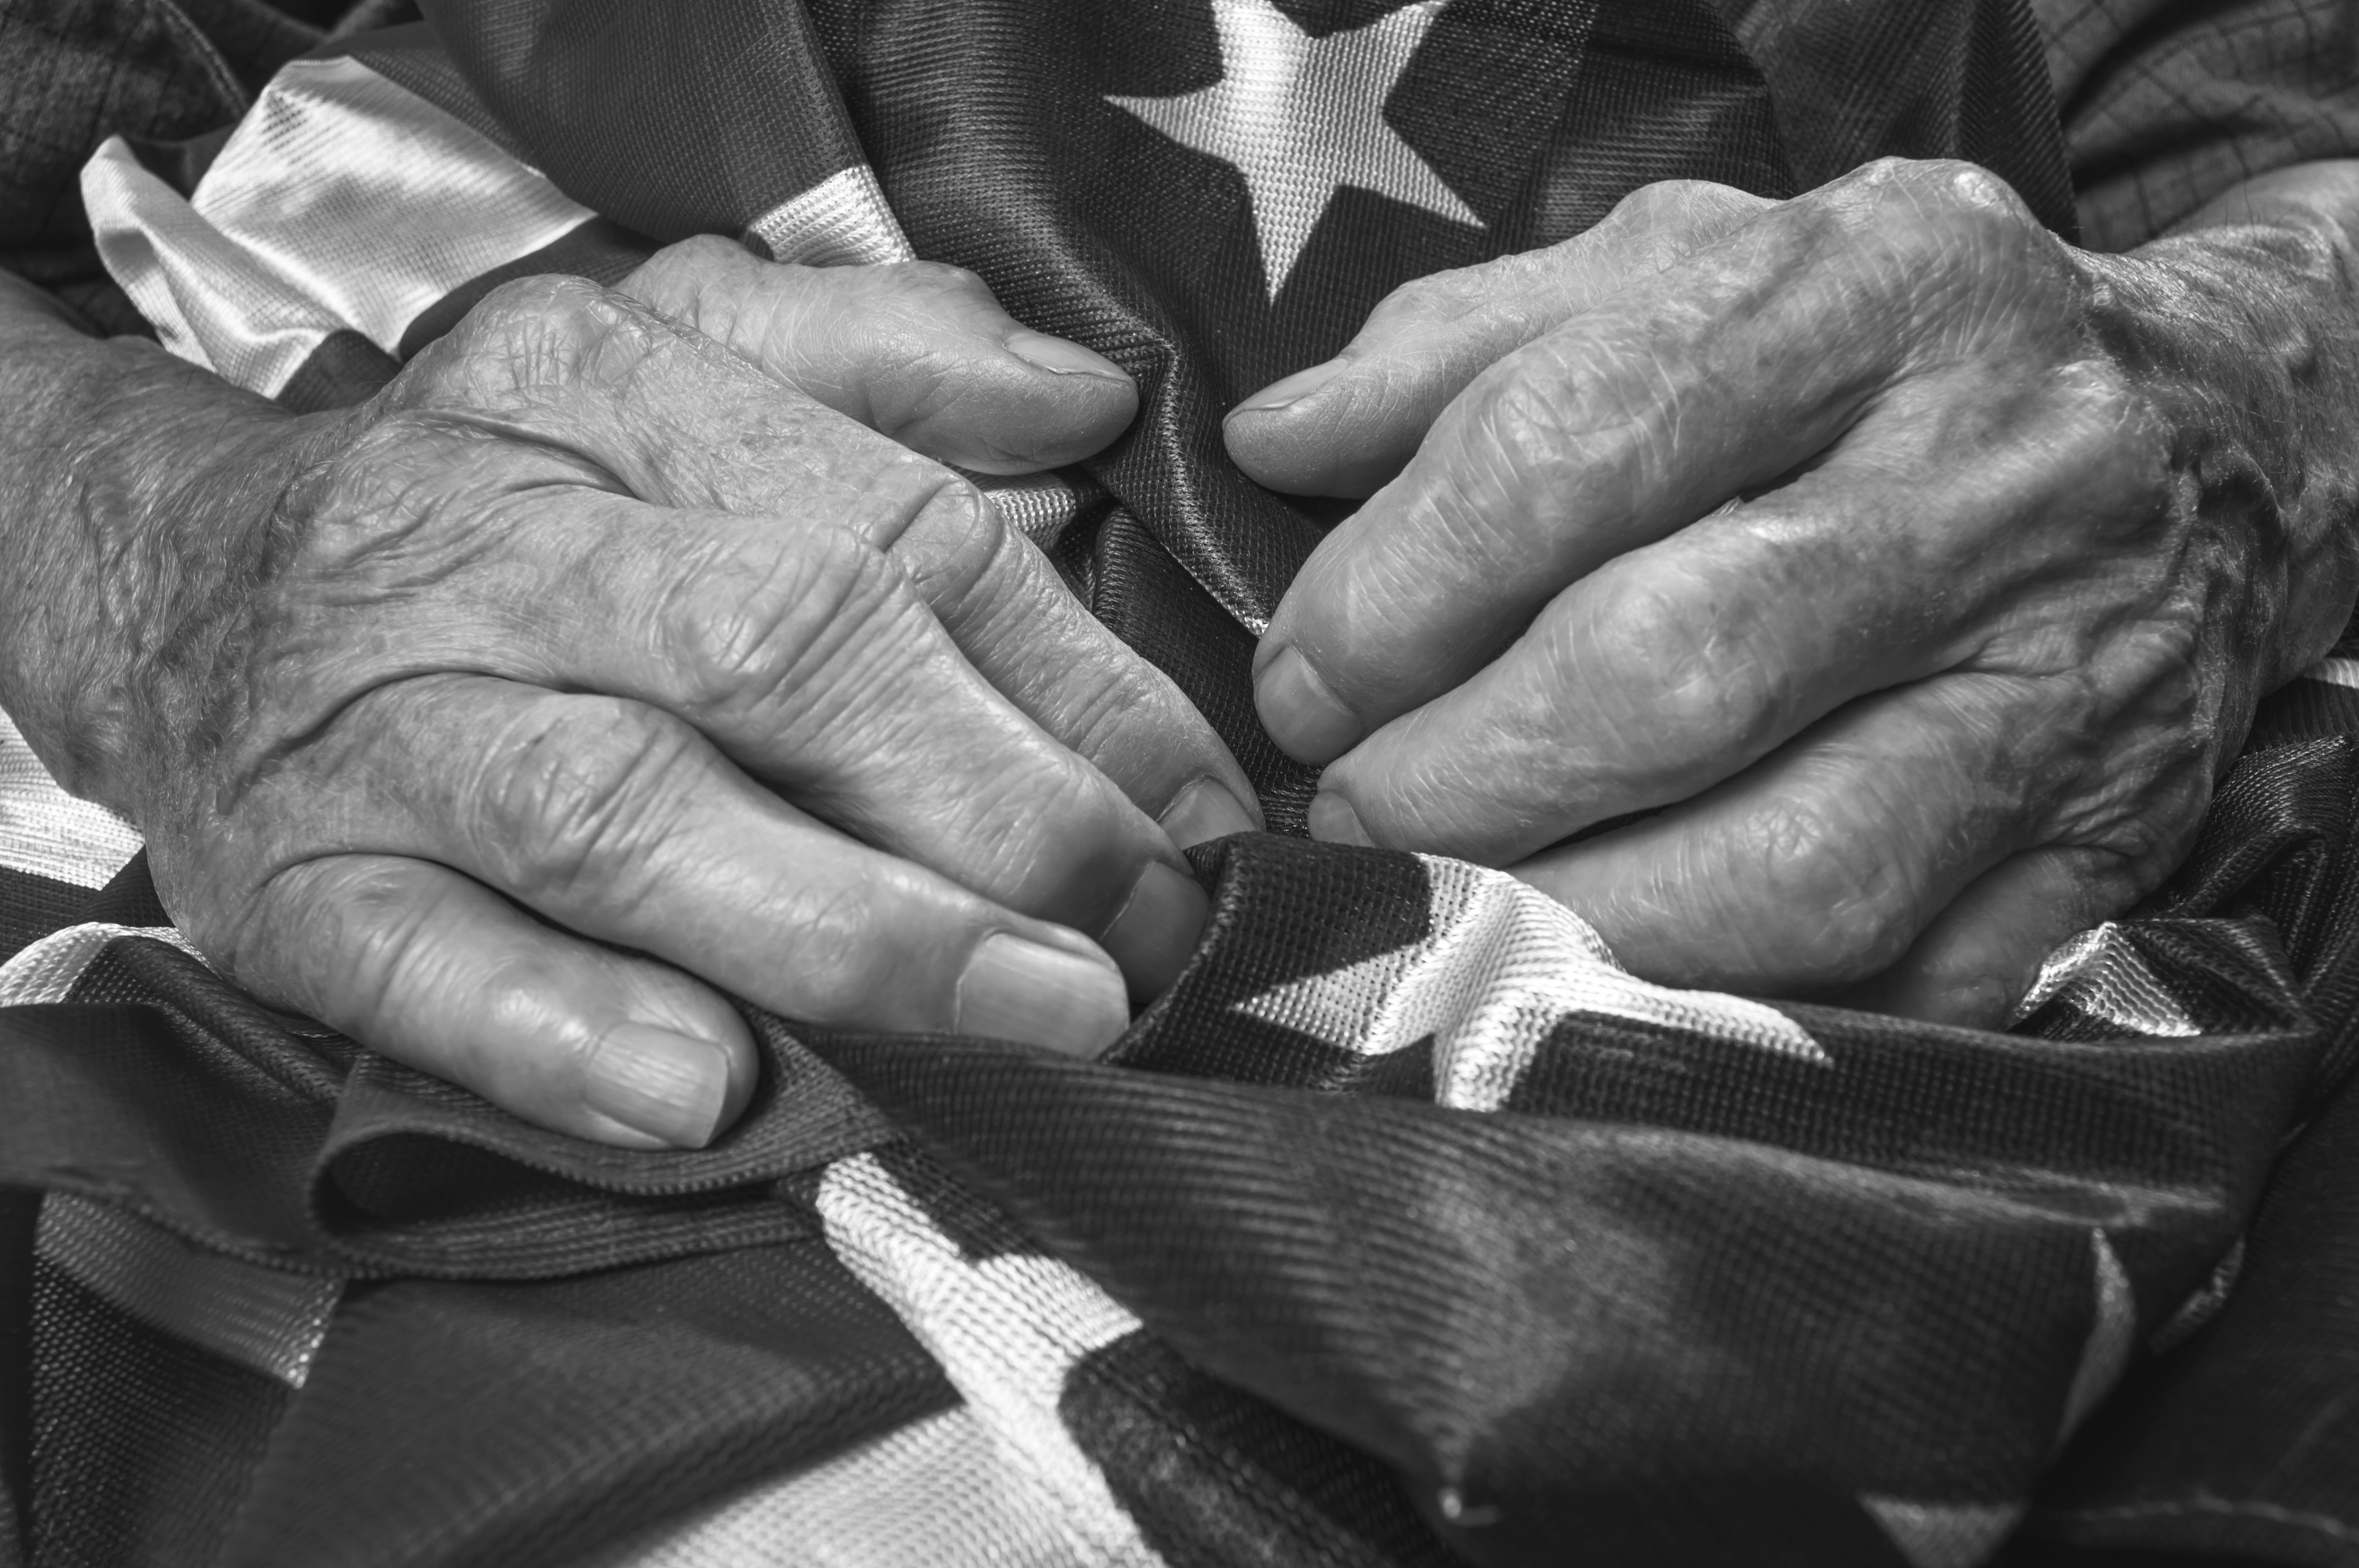 veterans-hands-on-American-flag